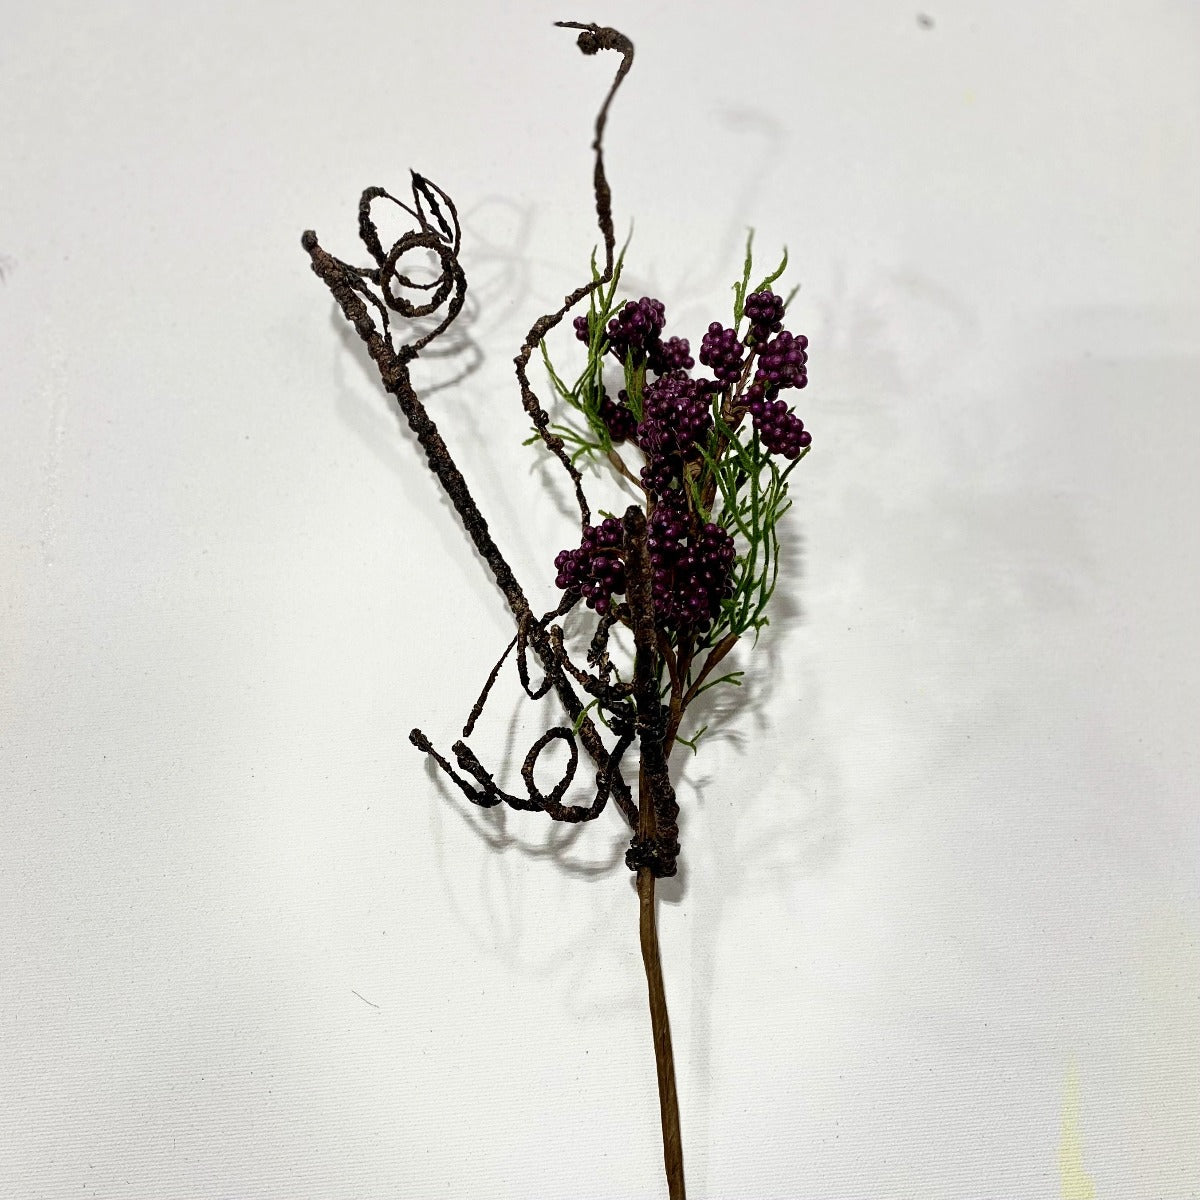 Blackberry sprig/spray